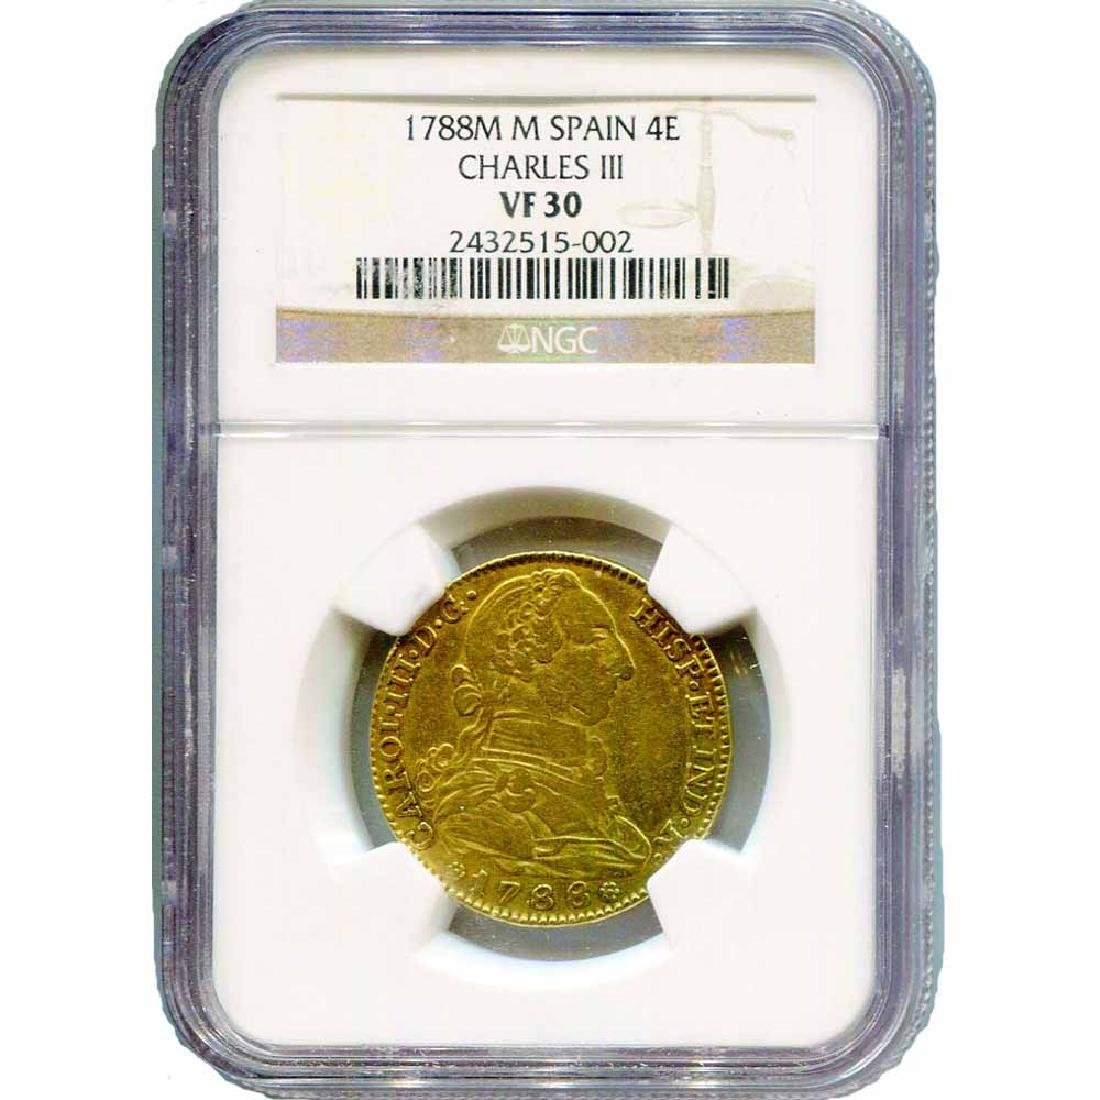 Spain 4 Escudos Gold Charles III 1788M VF30 NGC